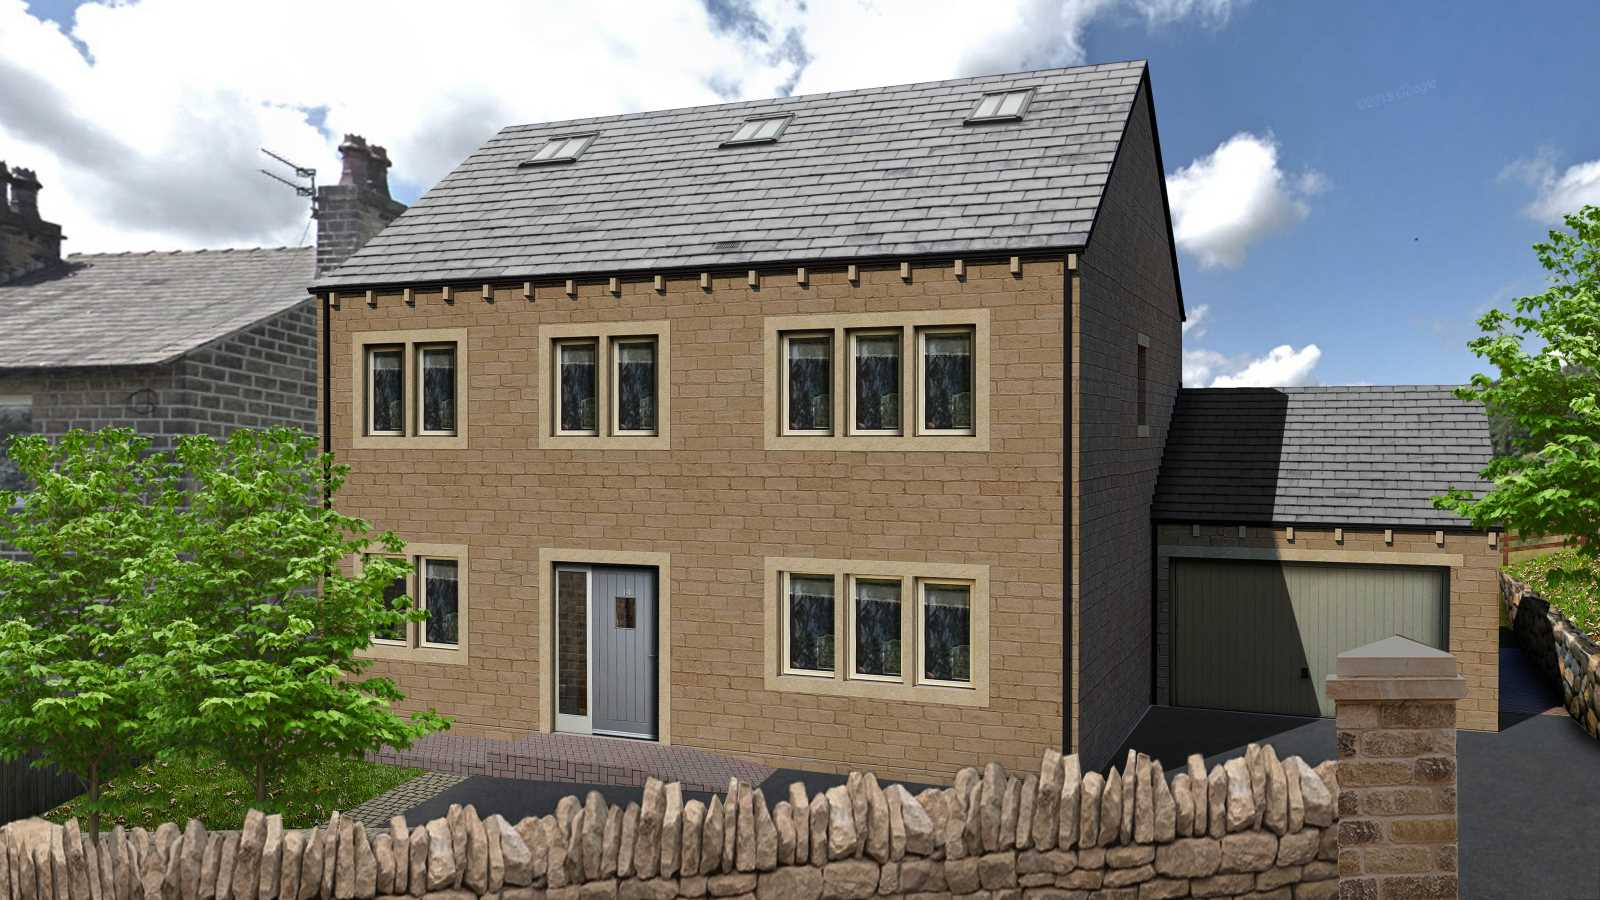 Plot 2, Dodlee Lane, Longwood, Huddersfield HD3 4TZ